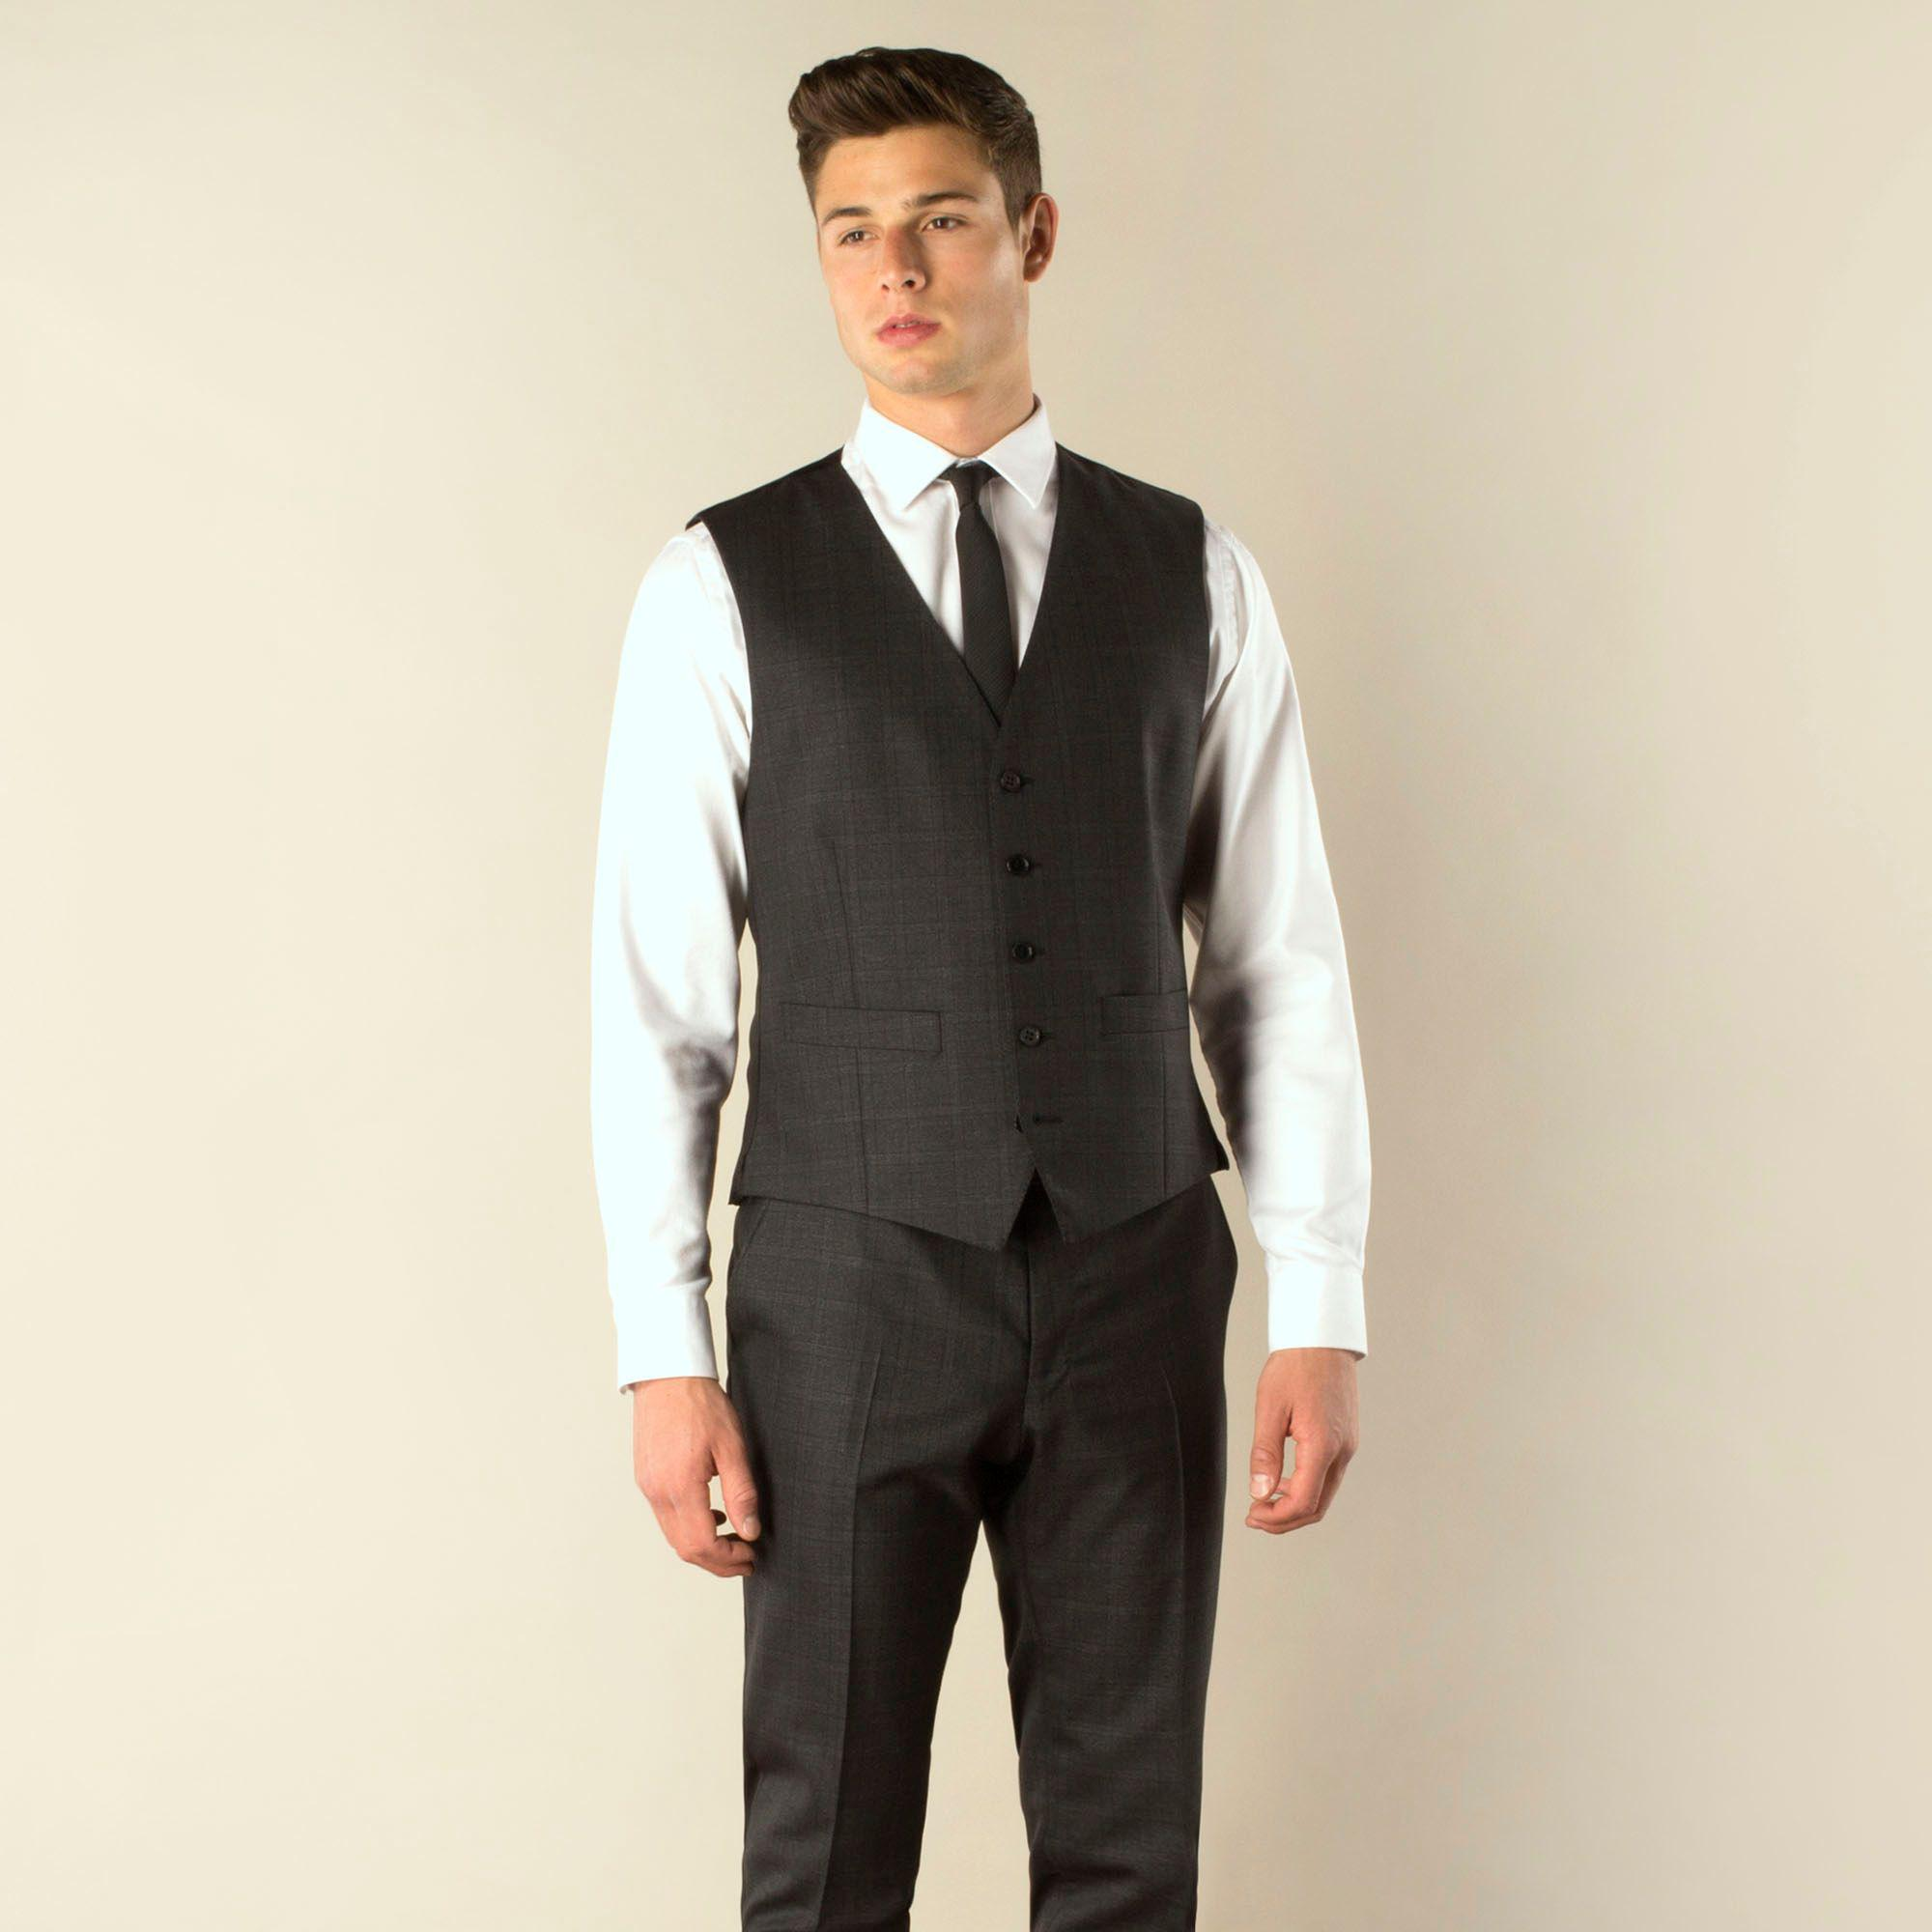 66039908b590be Ben Sherman. Men's Gray Charcoal Check 5 Button Camden Skinny Fit Suit  Waistcoat